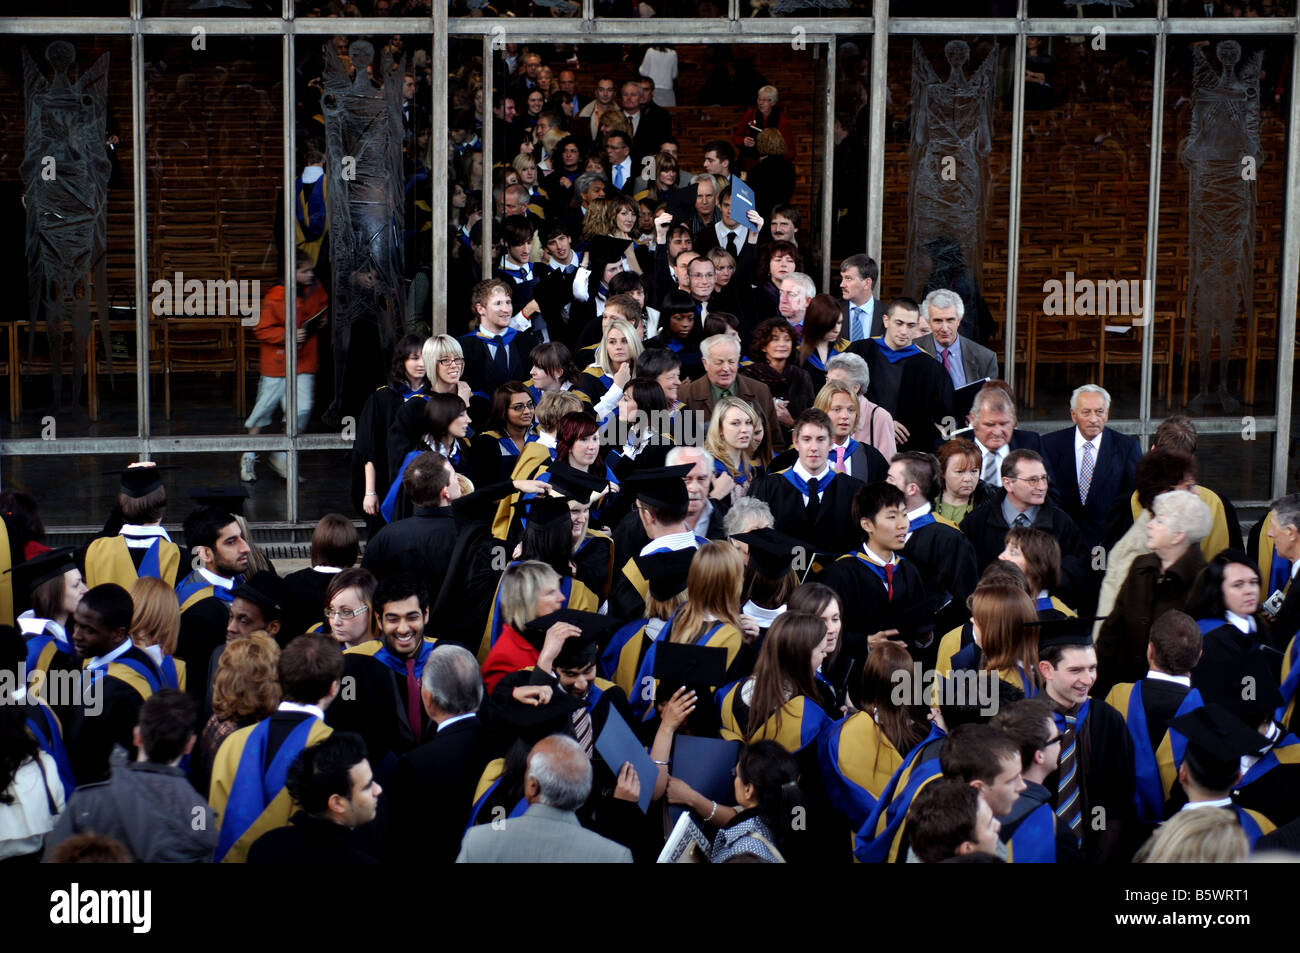 People leaving Coventry Cathedral after Coventry University graduation ceremony, West Midlands, UK - Stock Image